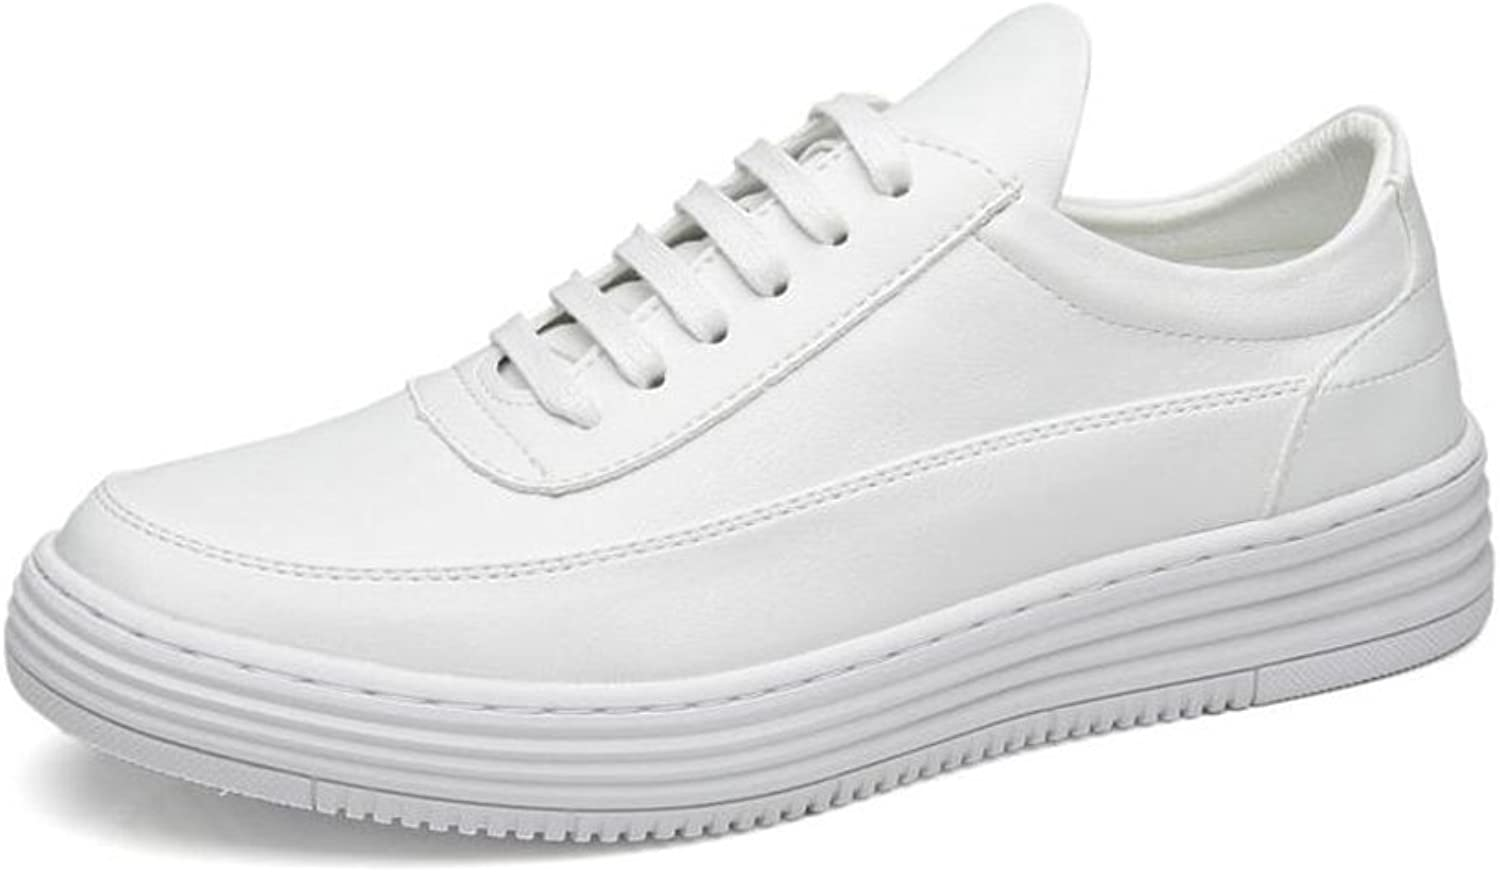 CJC shoes Fashion Men's Casual Business Work Comfy Walking Outdoor Sports Lightweight Breathable Lace-Up Non-Slip (color   White, Size   EU42 UK8.5)